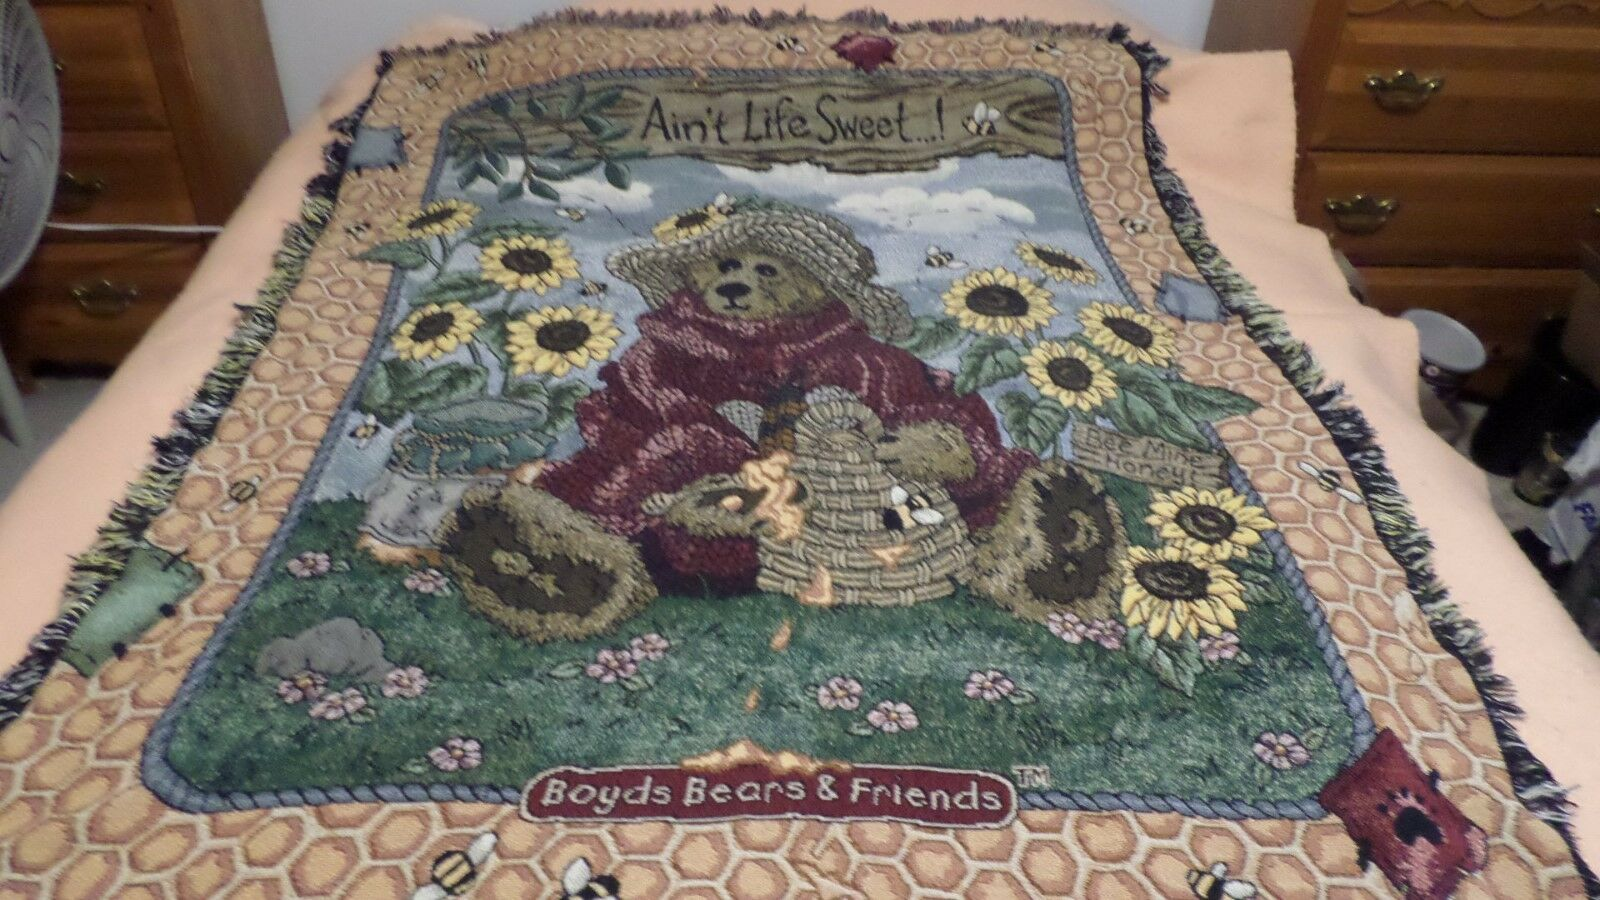 Boyds Bears & Friends  AIN'T LIFE SWEET  Tapestry Afghan Throw